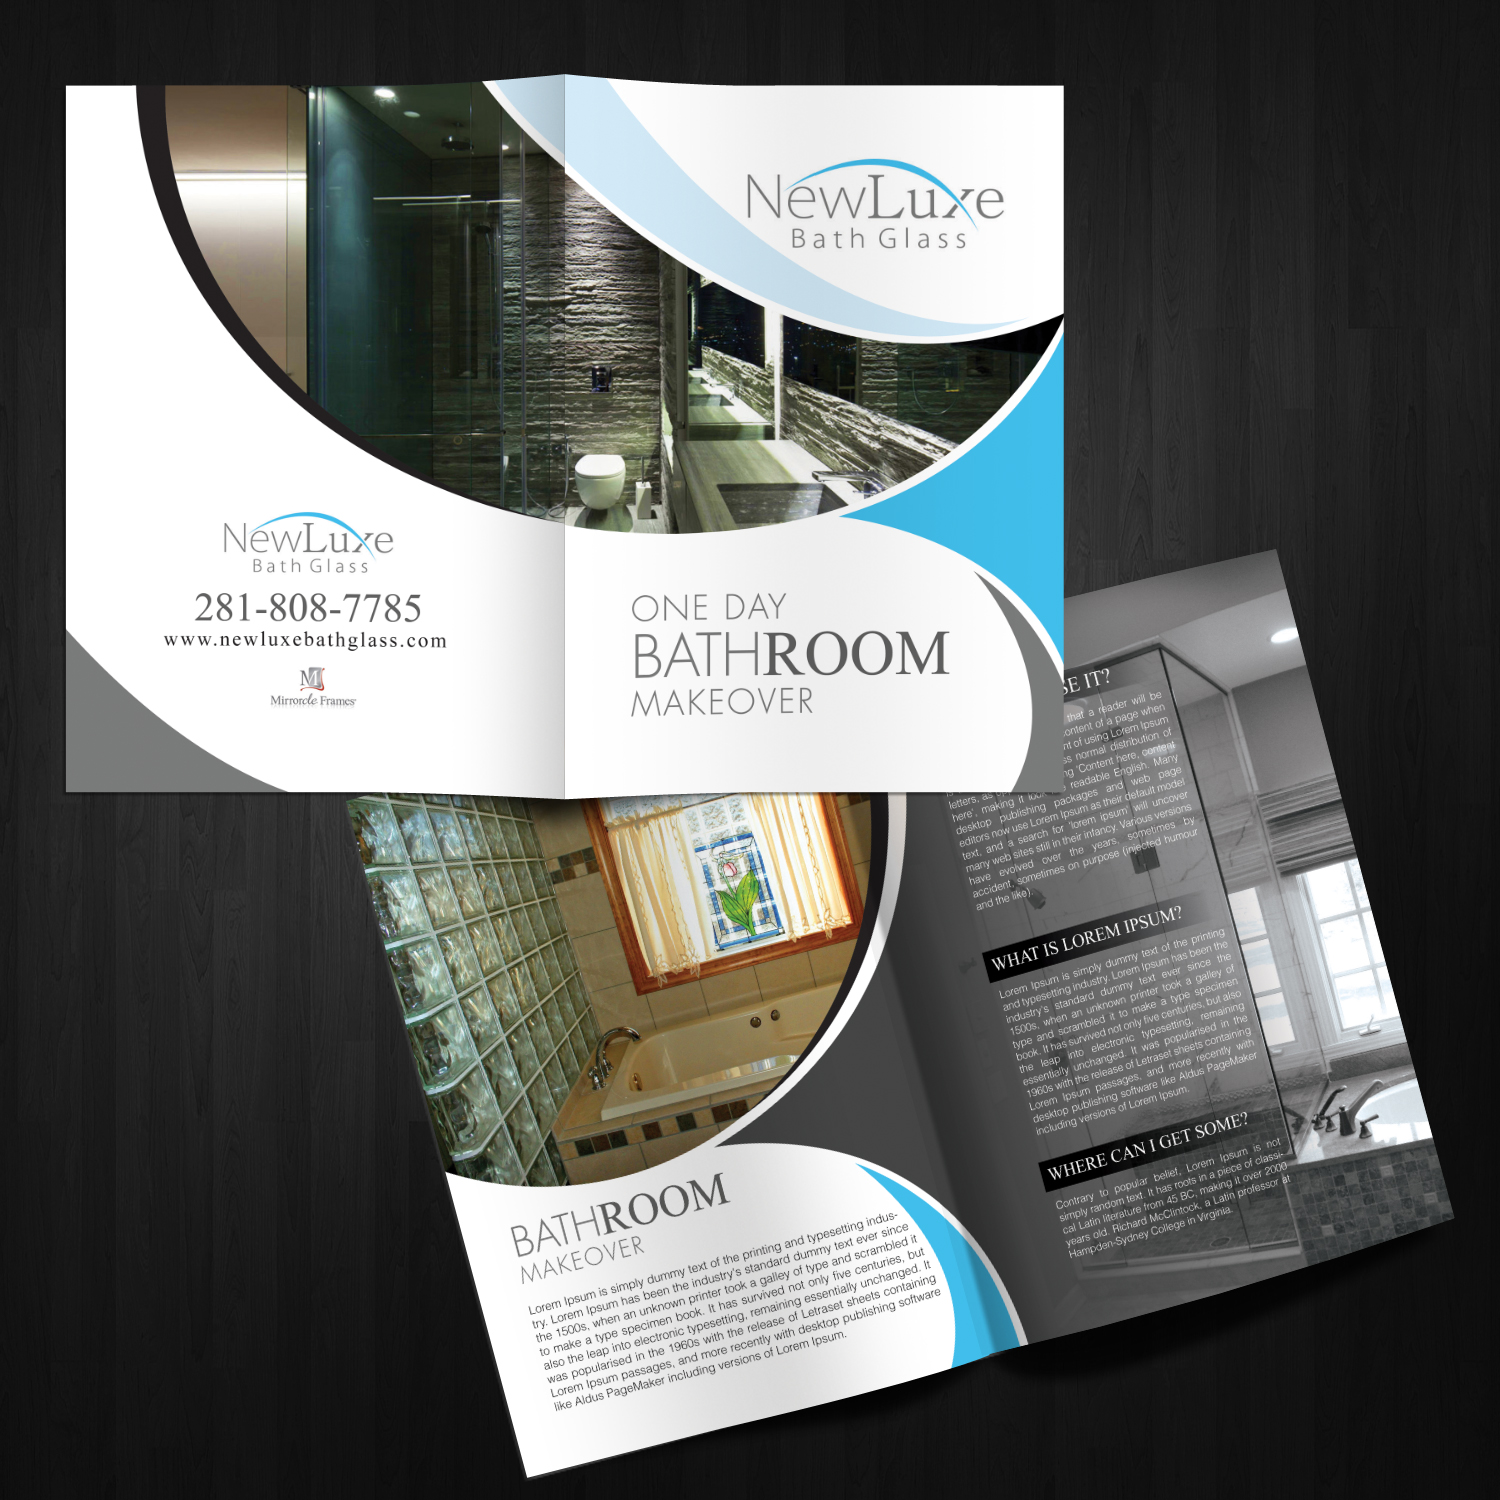 brochure design by kreative fingers for niche glass company needs brochure design 12783849 - Mirrorcle Frames